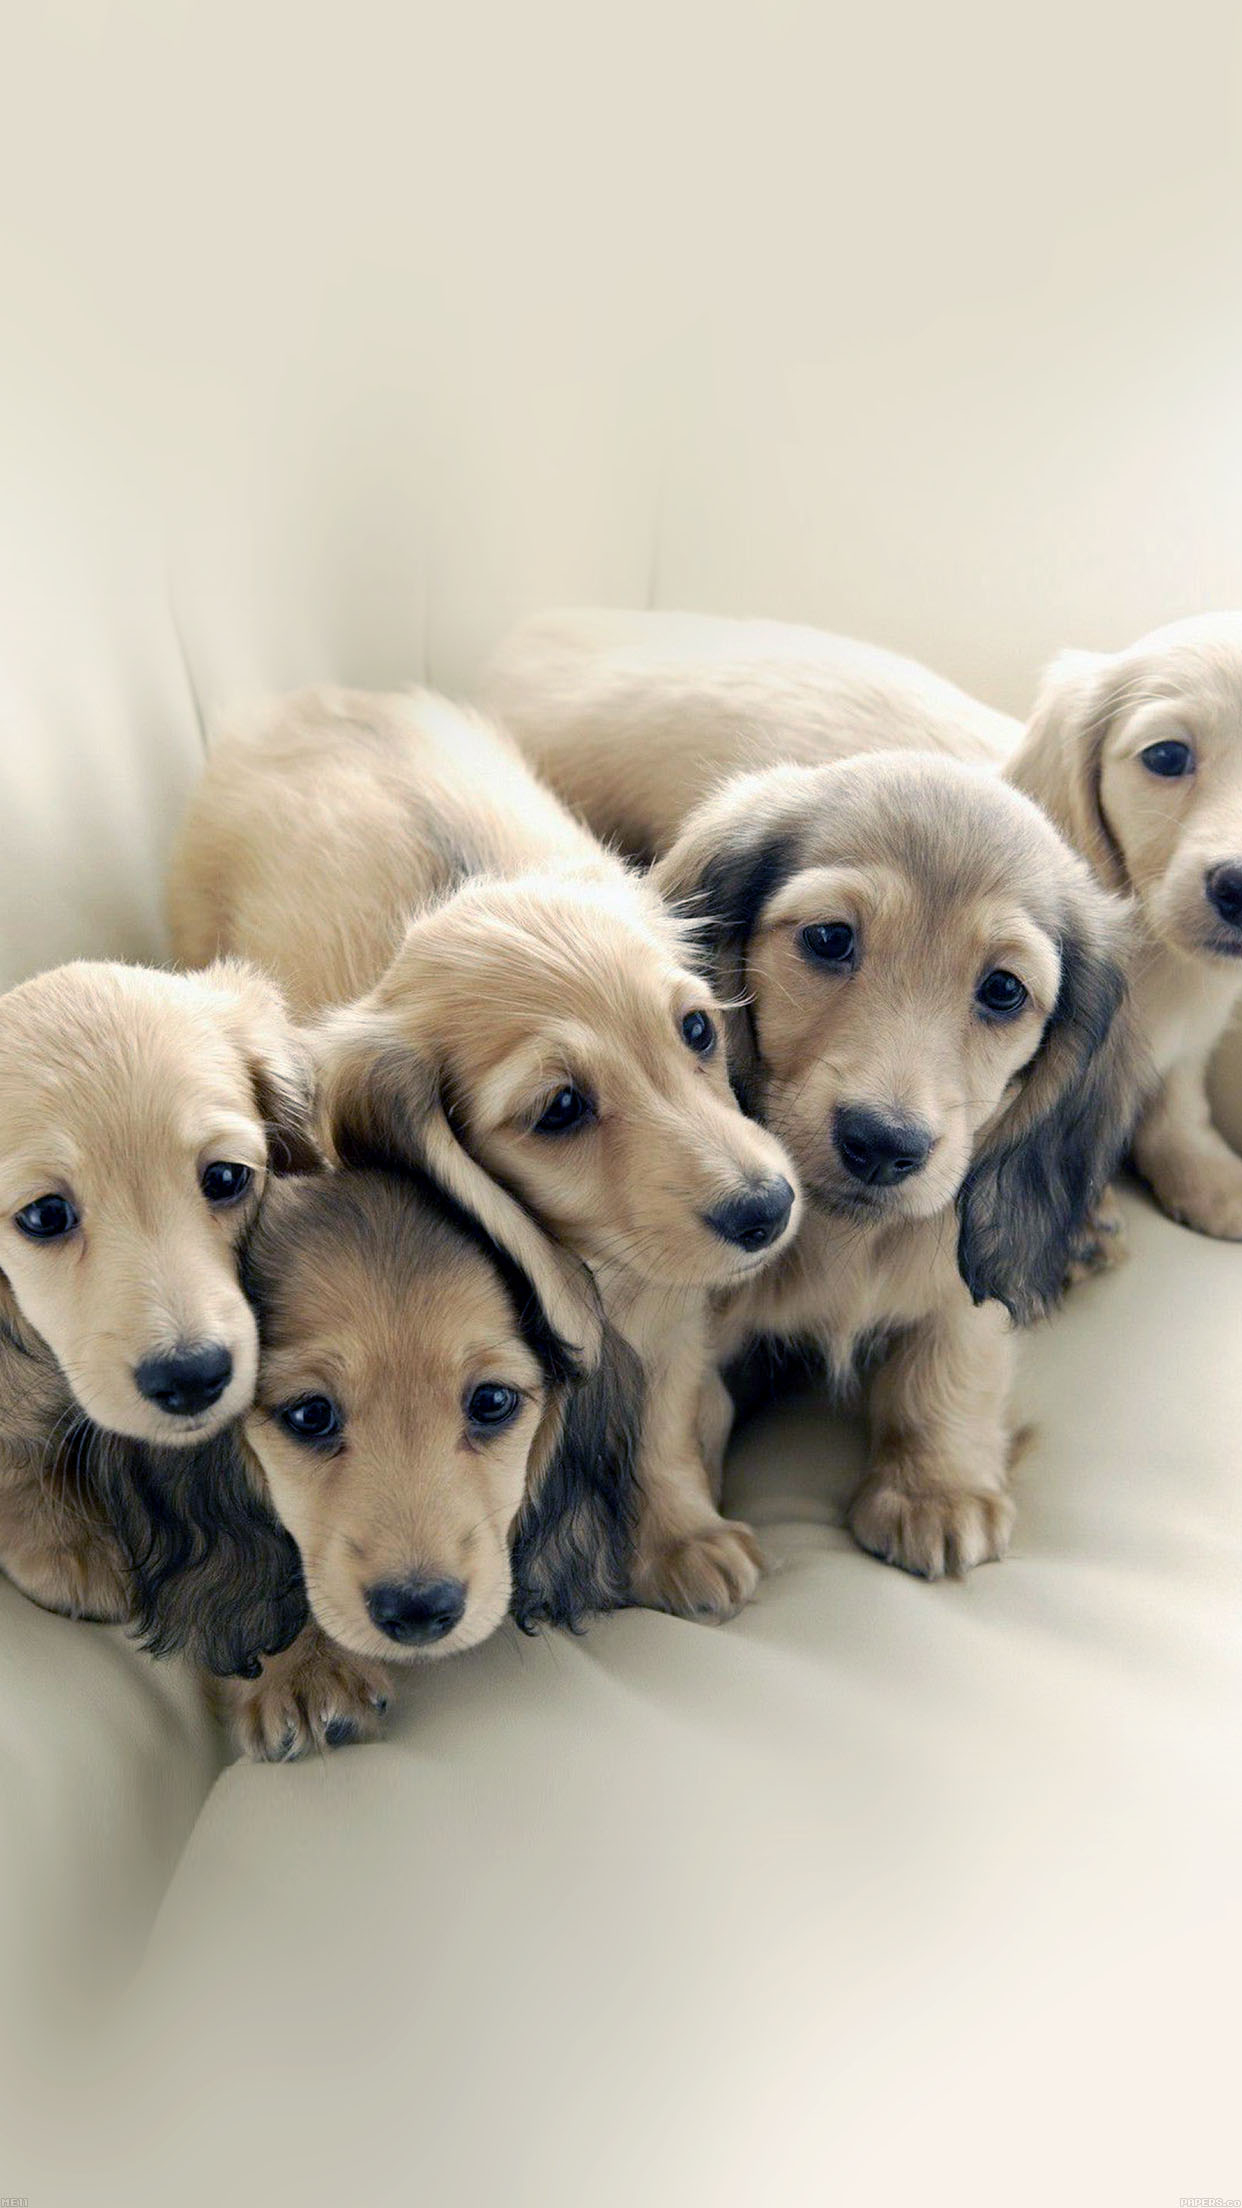 Me11 Puppy Dog Retriever Family Animal Papers Co